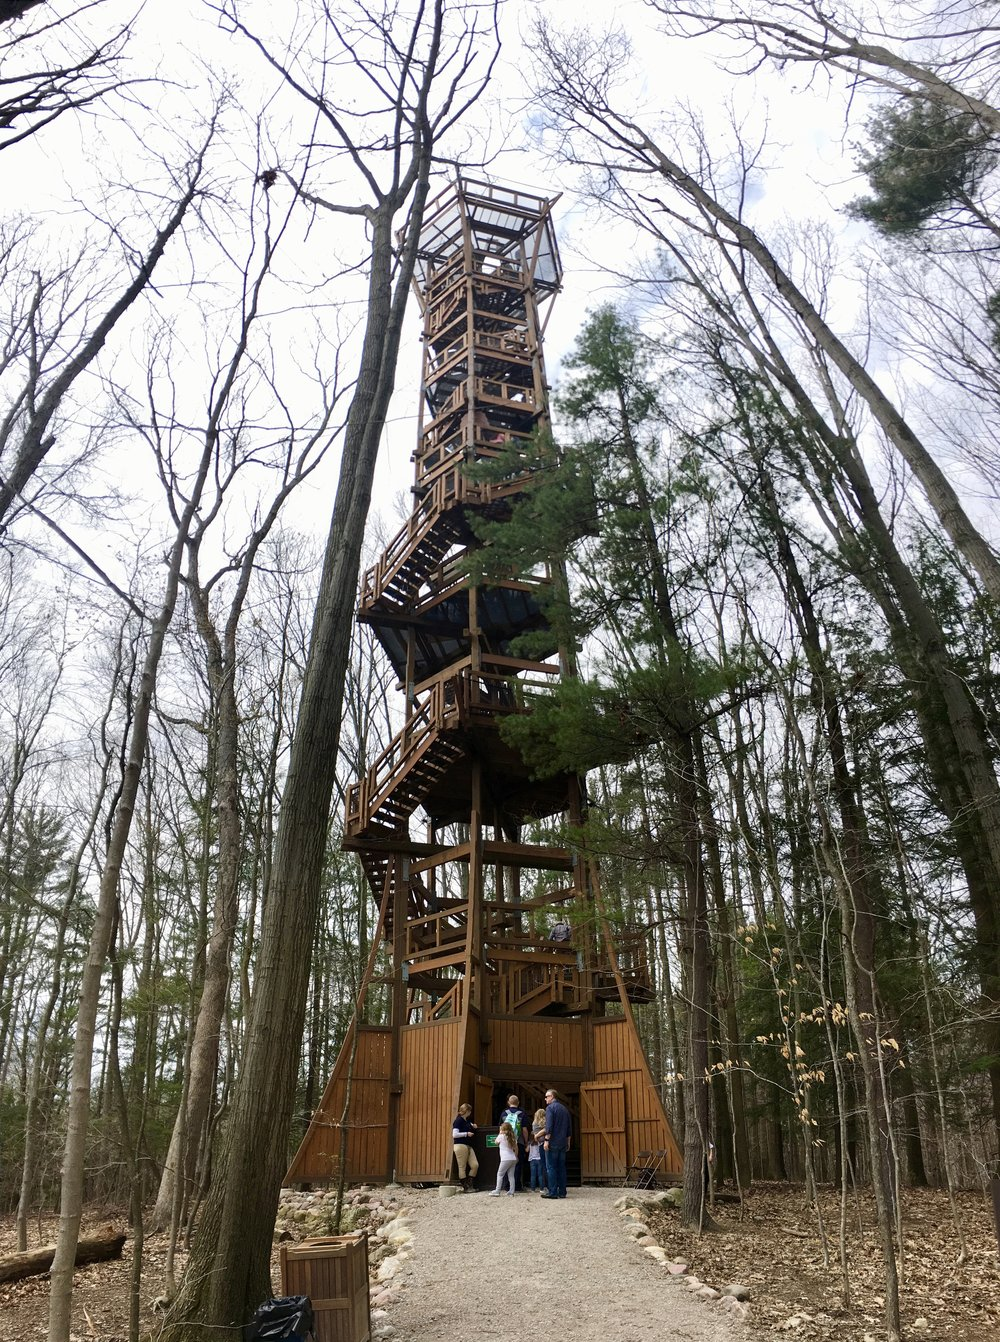 The Kalberer Emergent Tower from the forest floor.